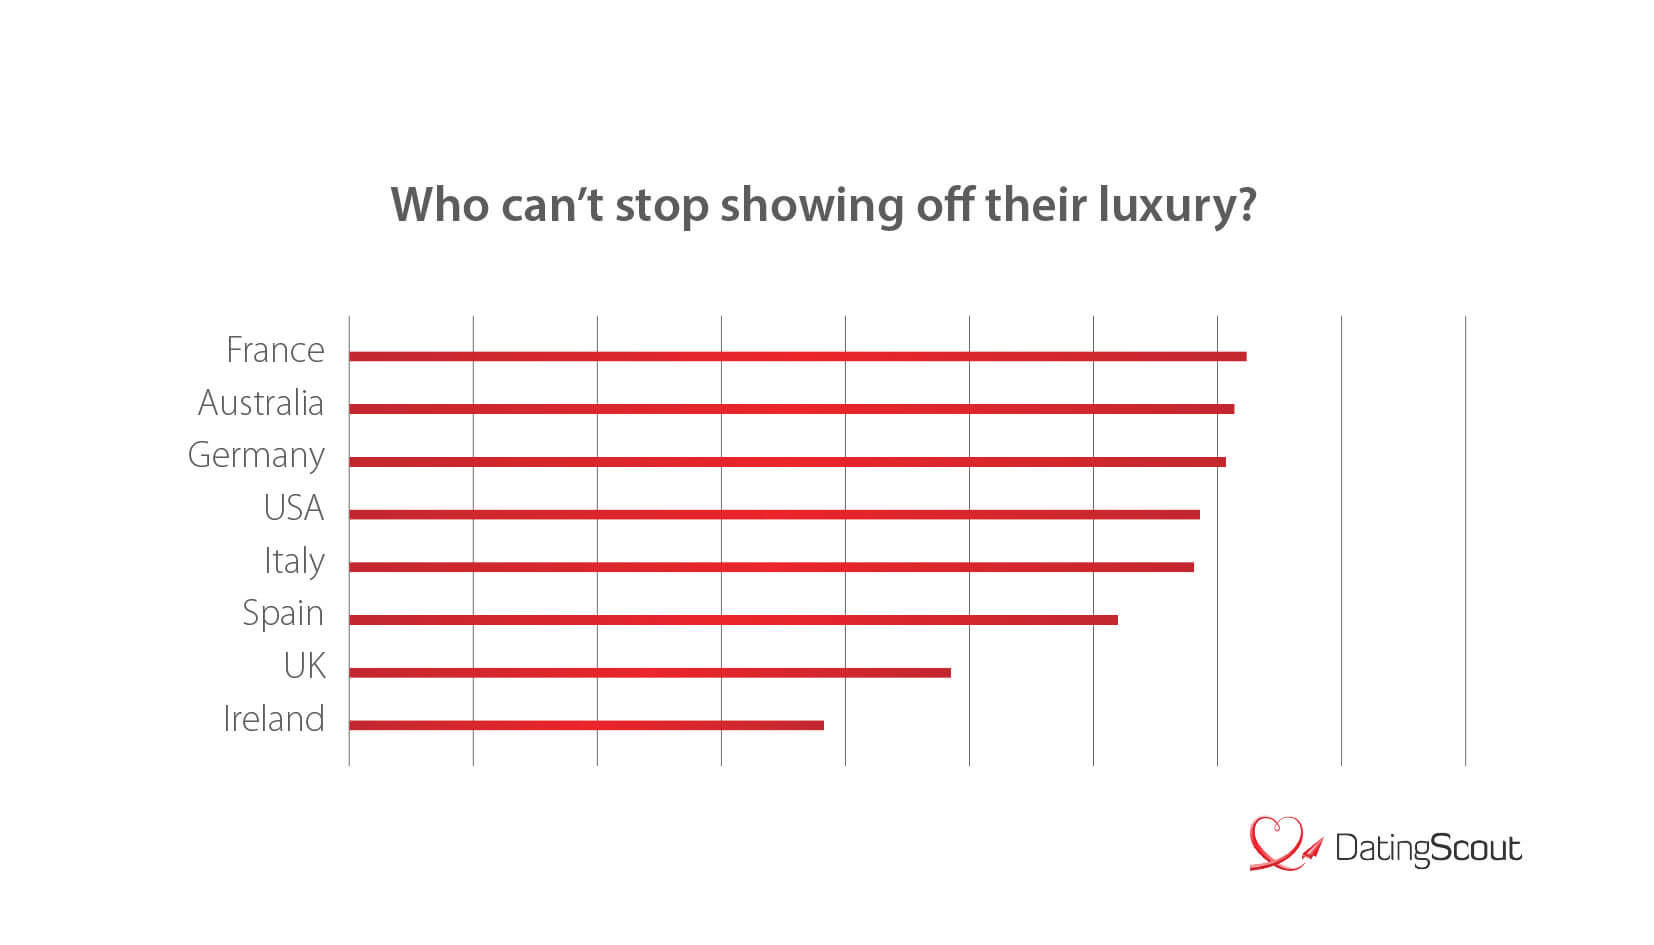 Who shows the most luxury? (International)